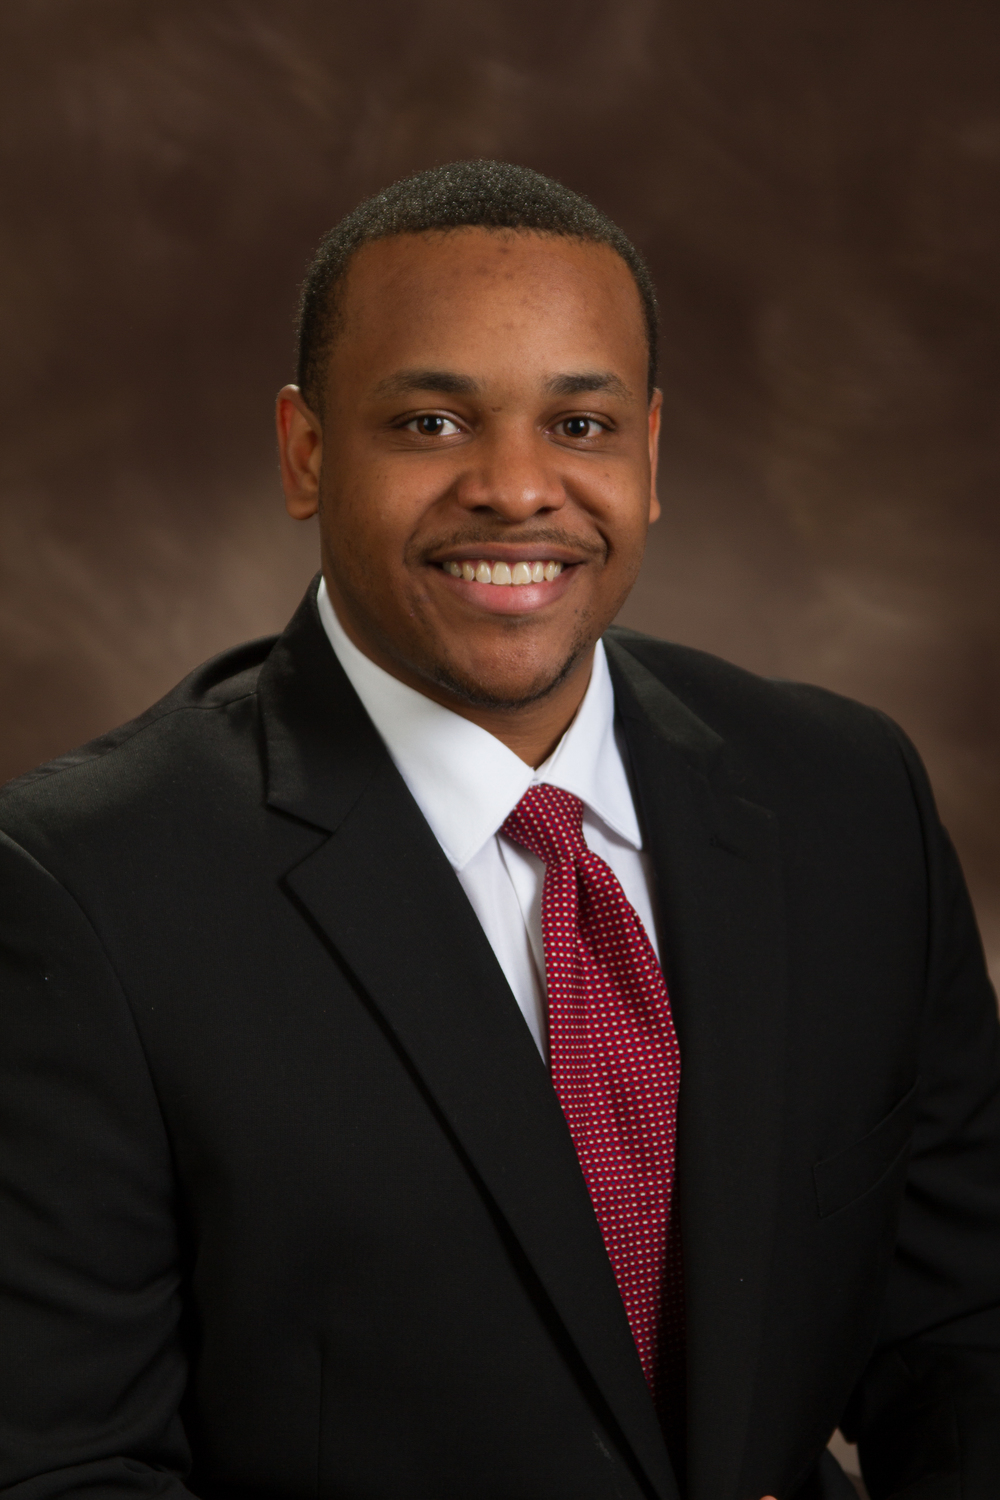 Nth Scholar Justin Hicks   Wake Forest University School of Medicine  Preceptor Dr. Macalus Hogan - University of Pittsburgh Medical Center  Pittsburgh, PA